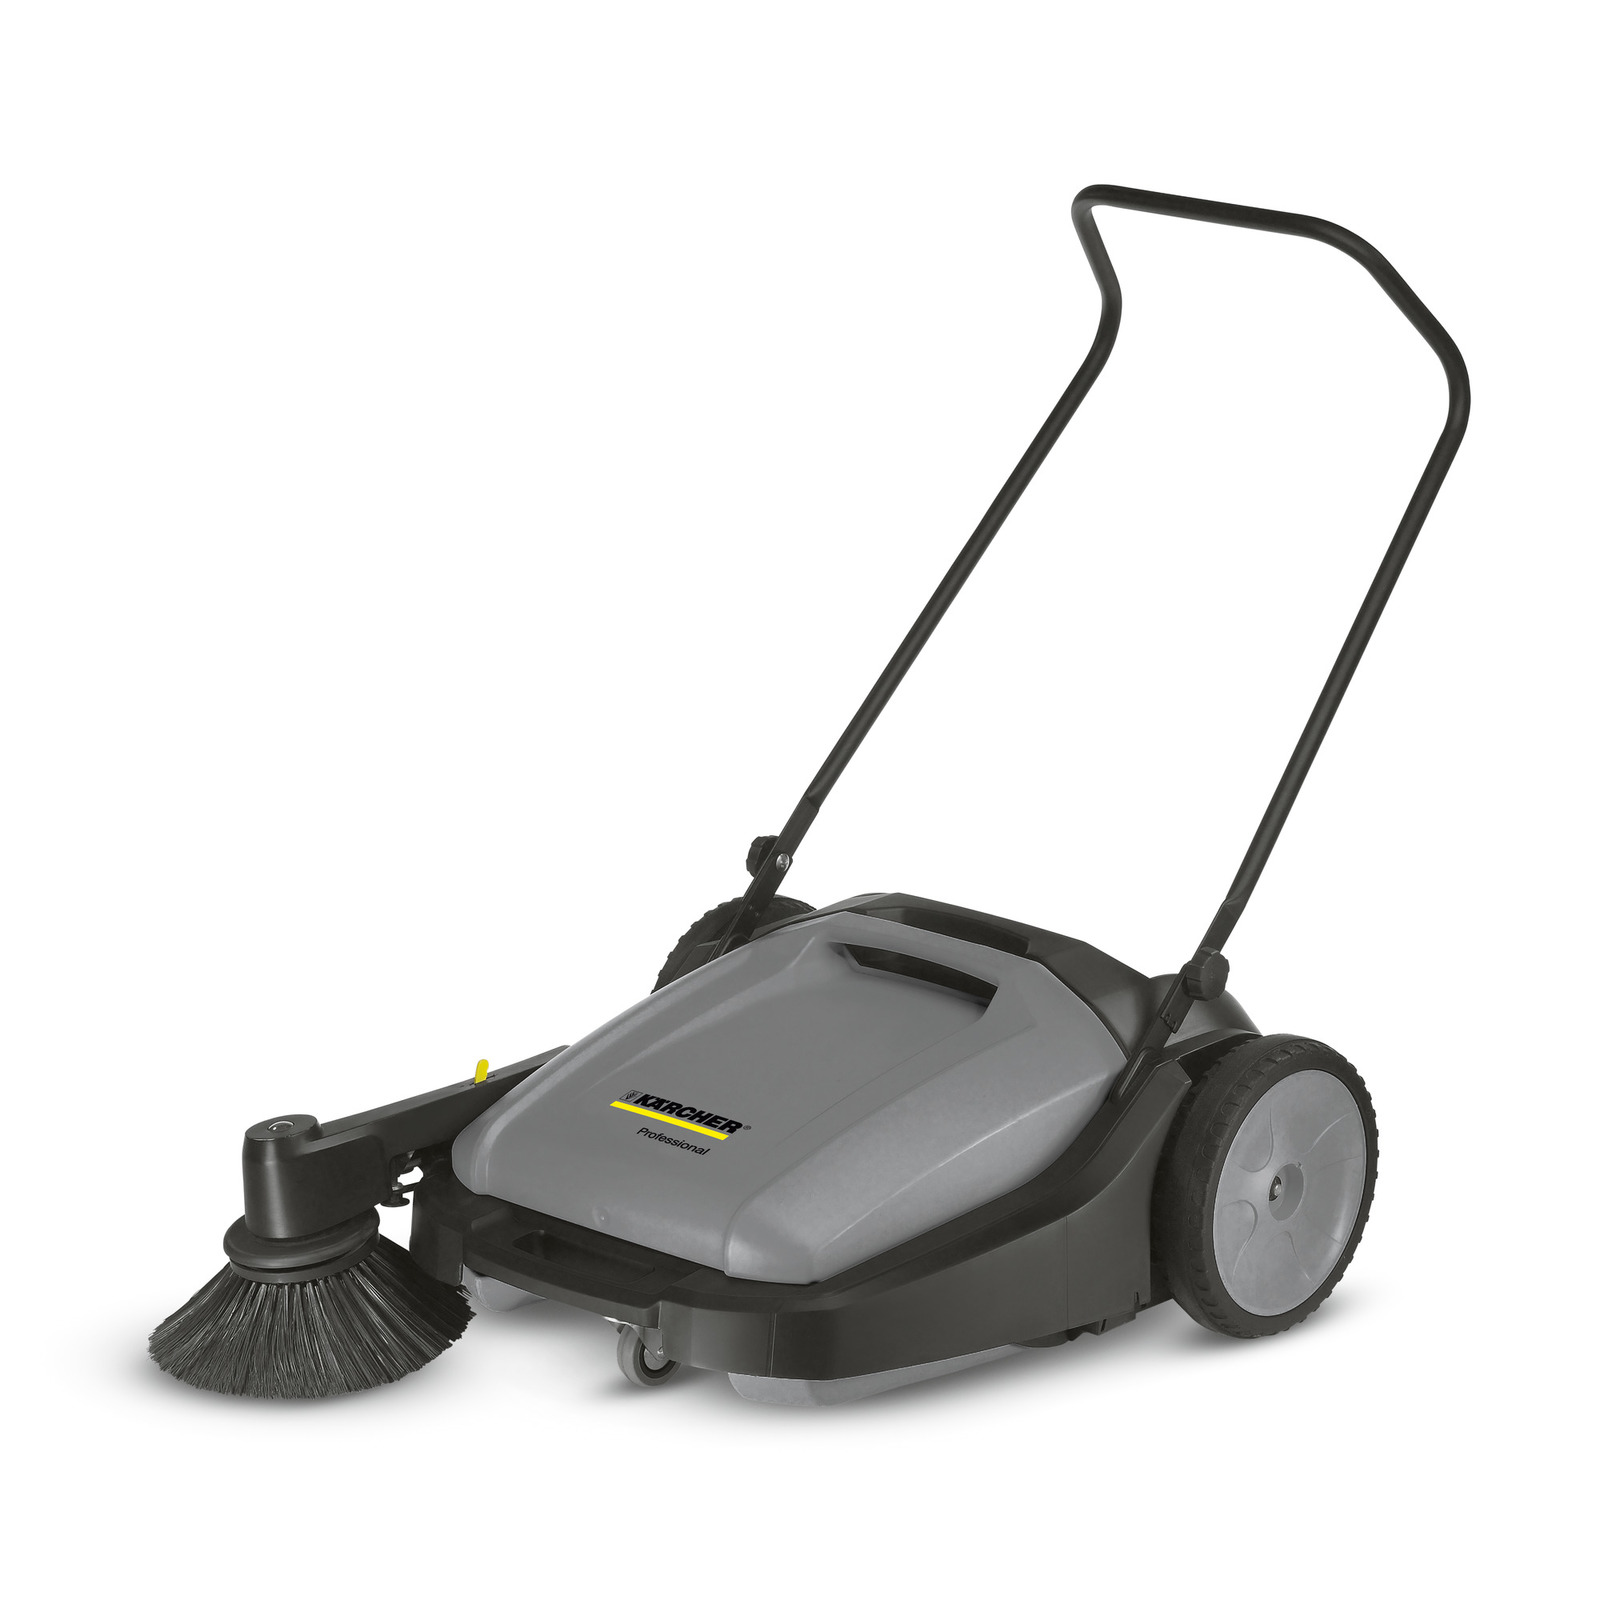 Kärcher Sweeper Km 70 15 C